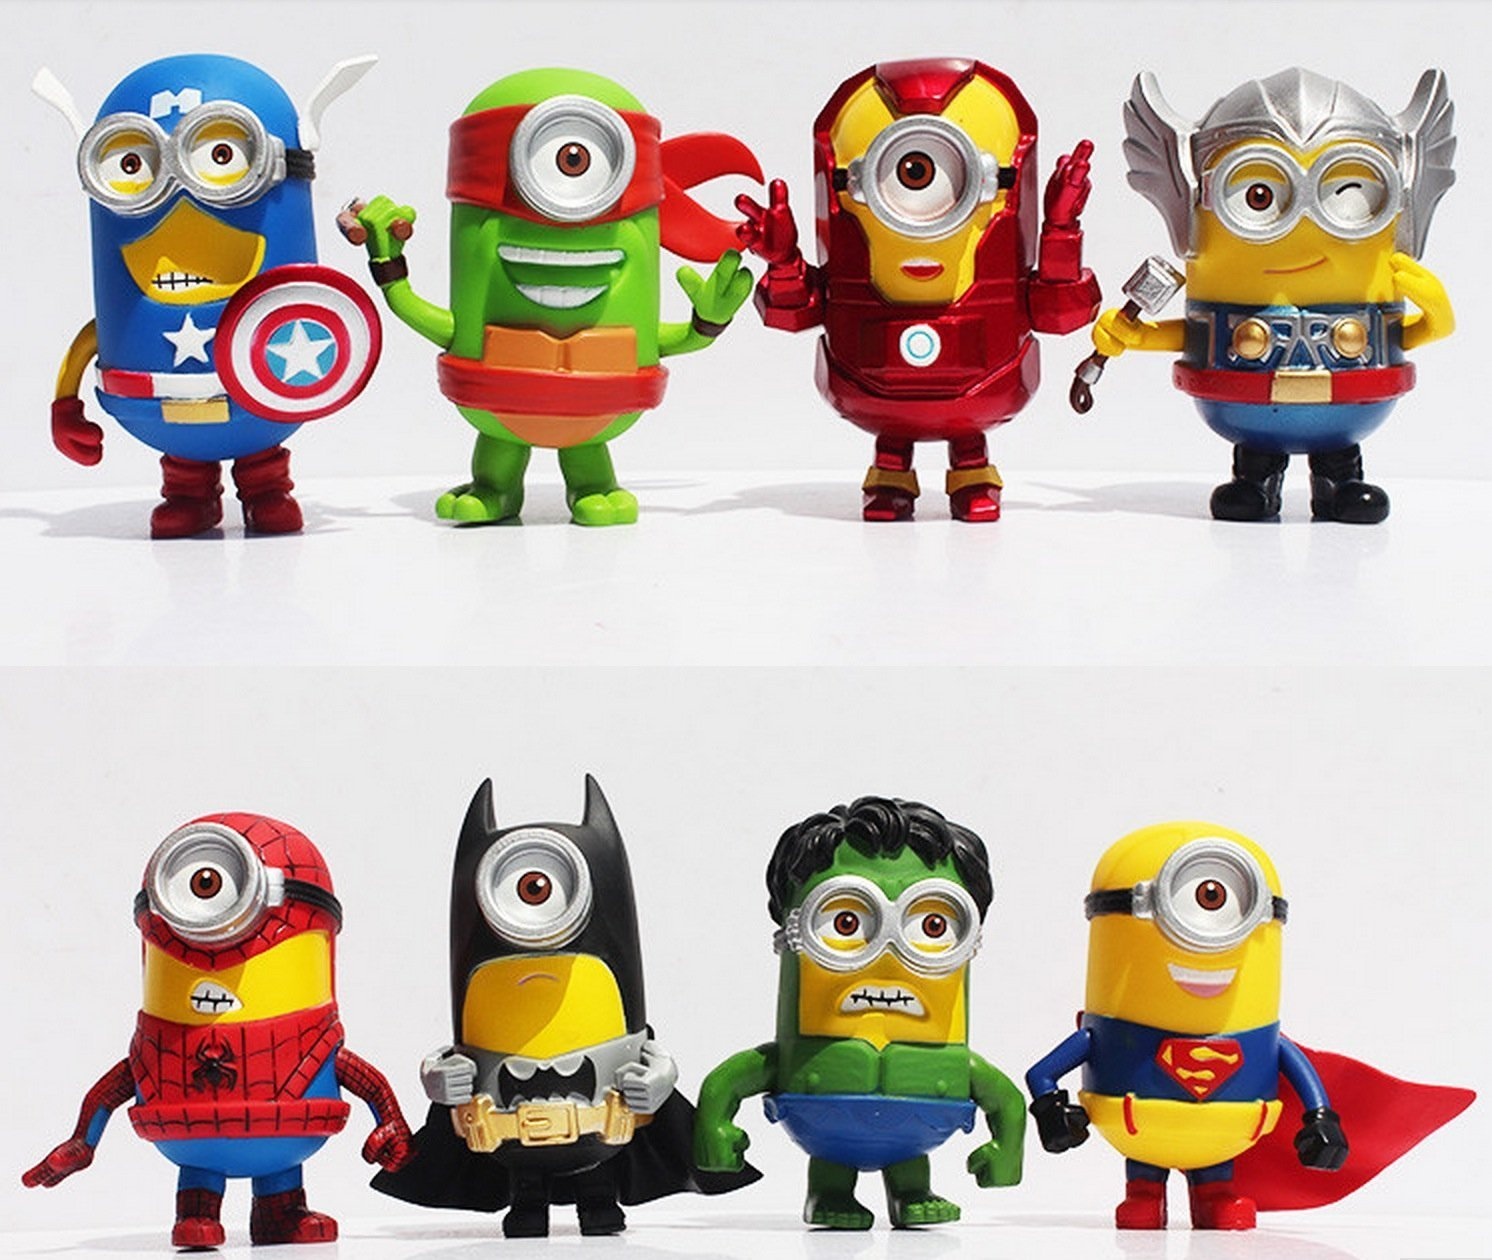 8 Pcs Minions Avengers Cosplay Figure Model Collectible Toy Set